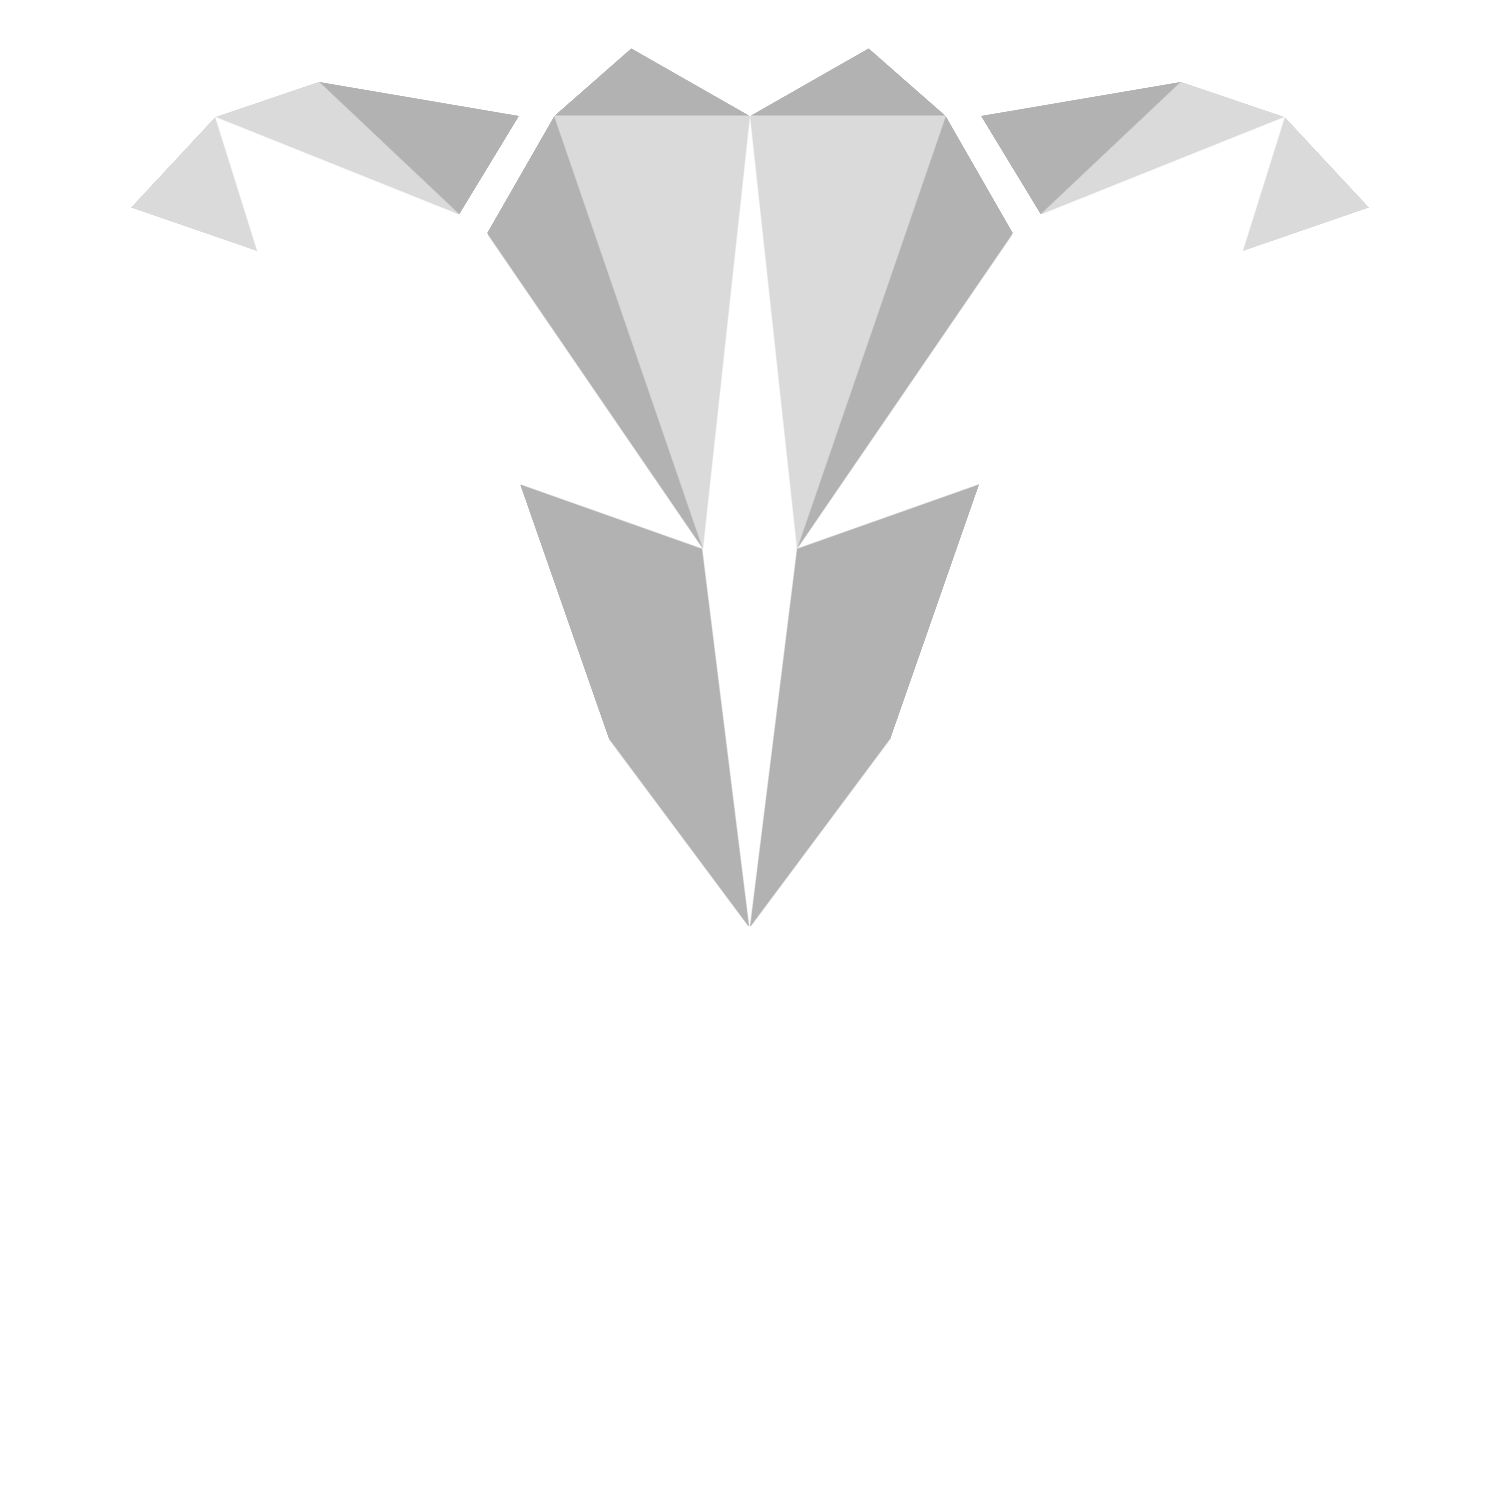 Etchebarne Dairy Consulting